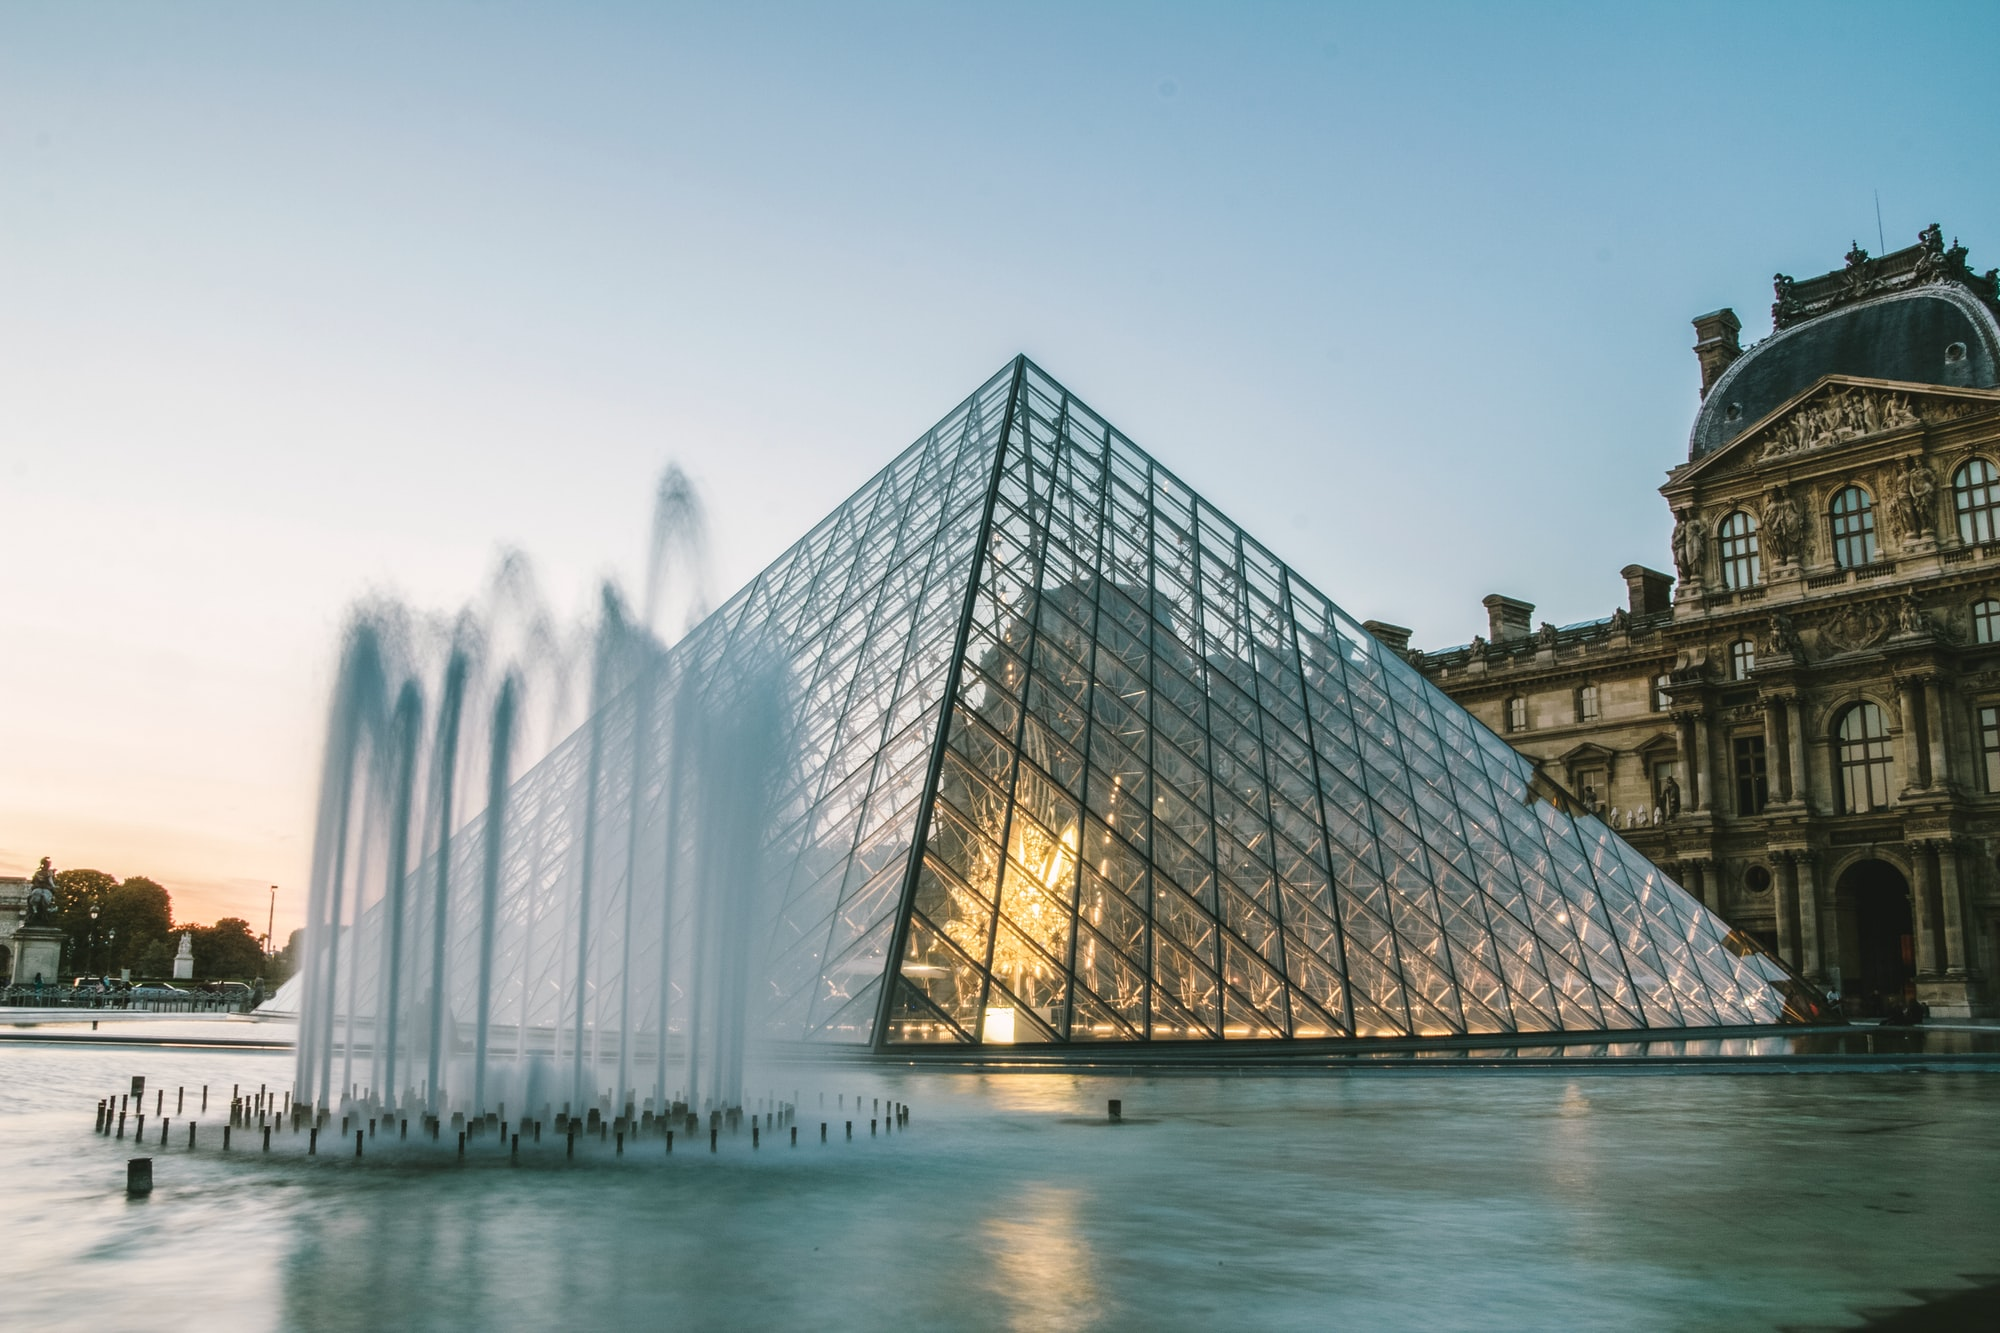 Photo of the pyramid of the Louvres in Paris France by night / golden hour